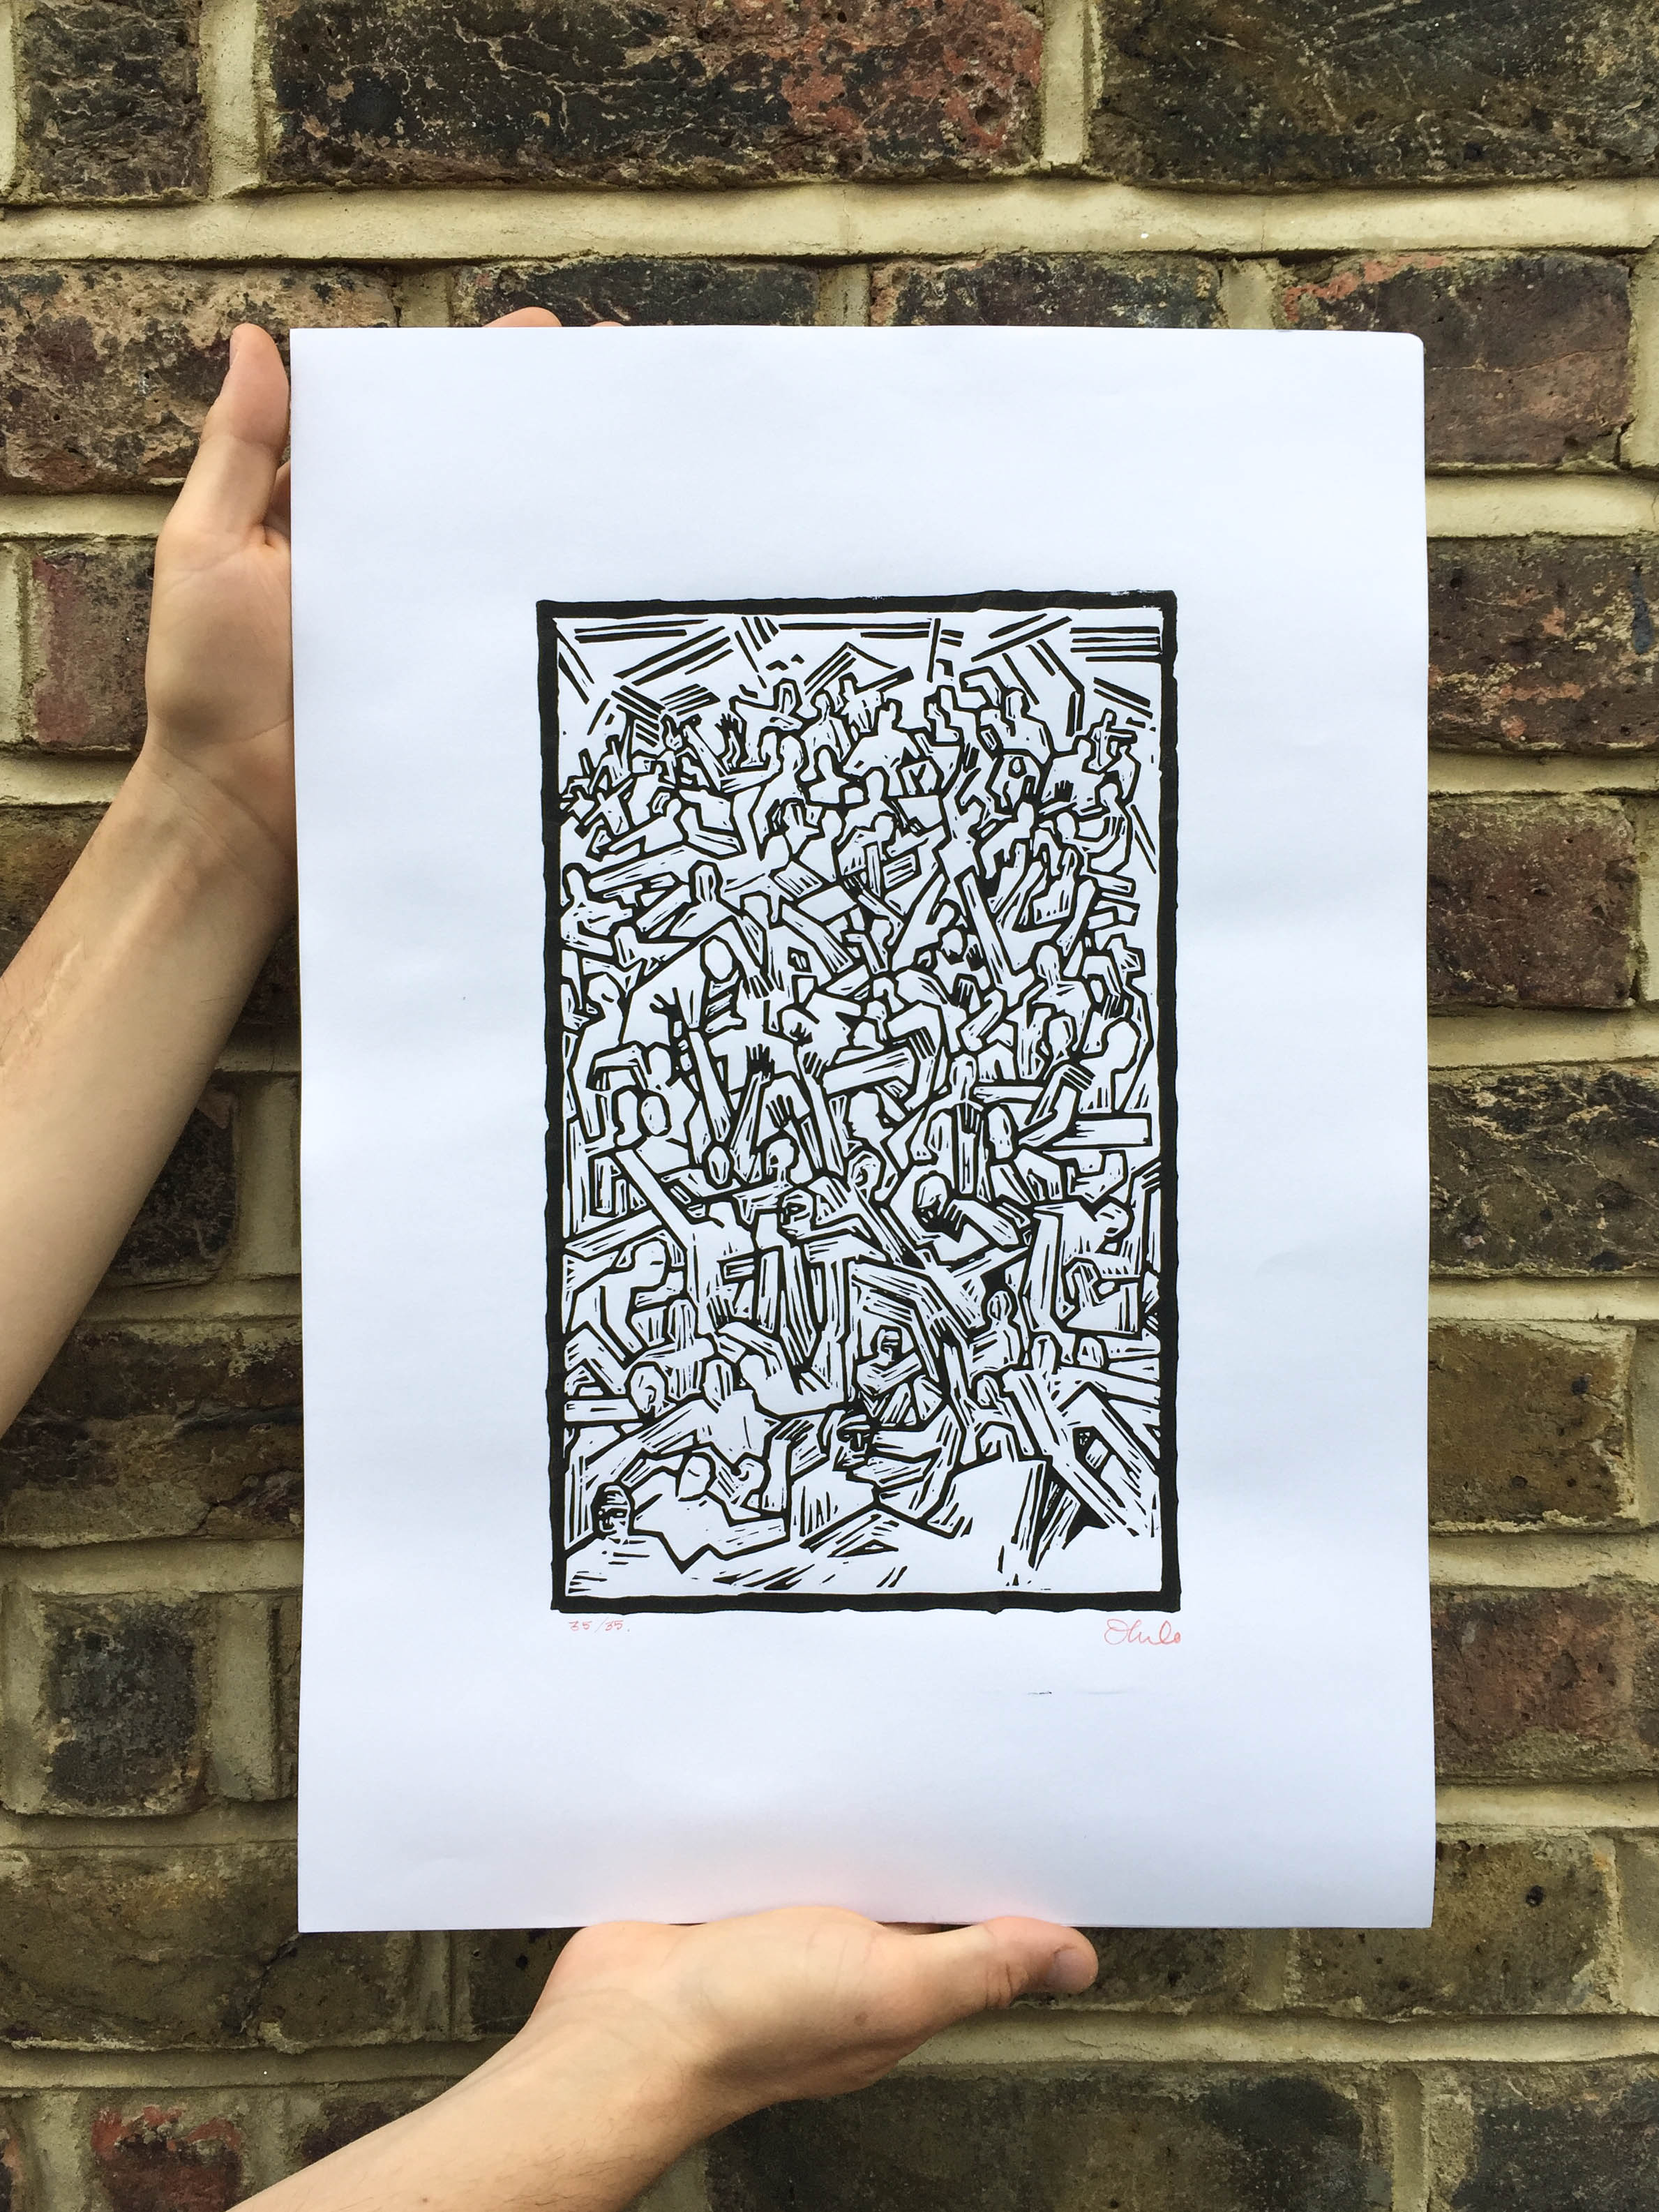 IDLESLIMITED EDITION LINO PRINT - CLICK HERE TO ORDER